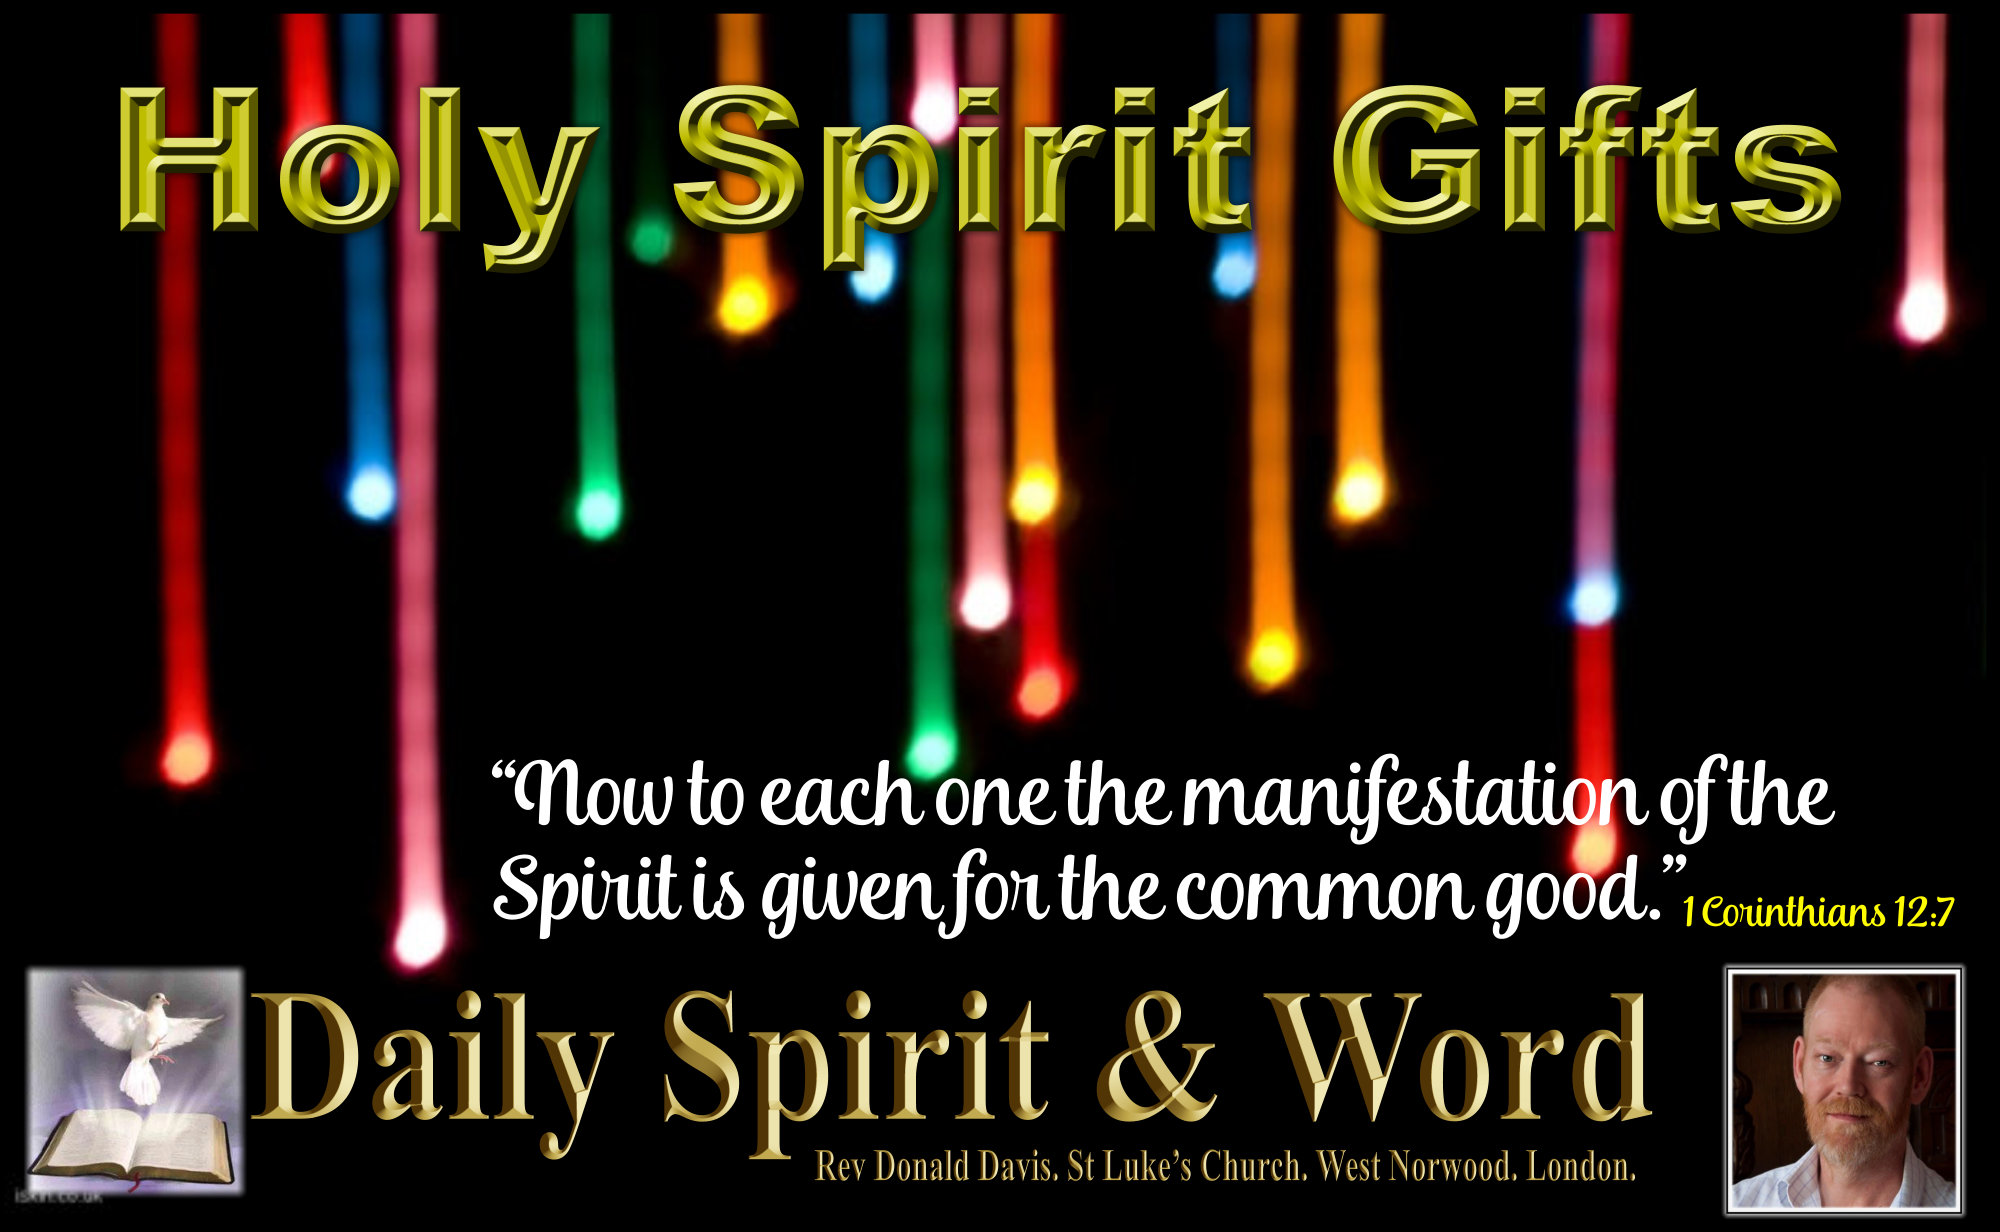 The Gifts of the Holy Spirit